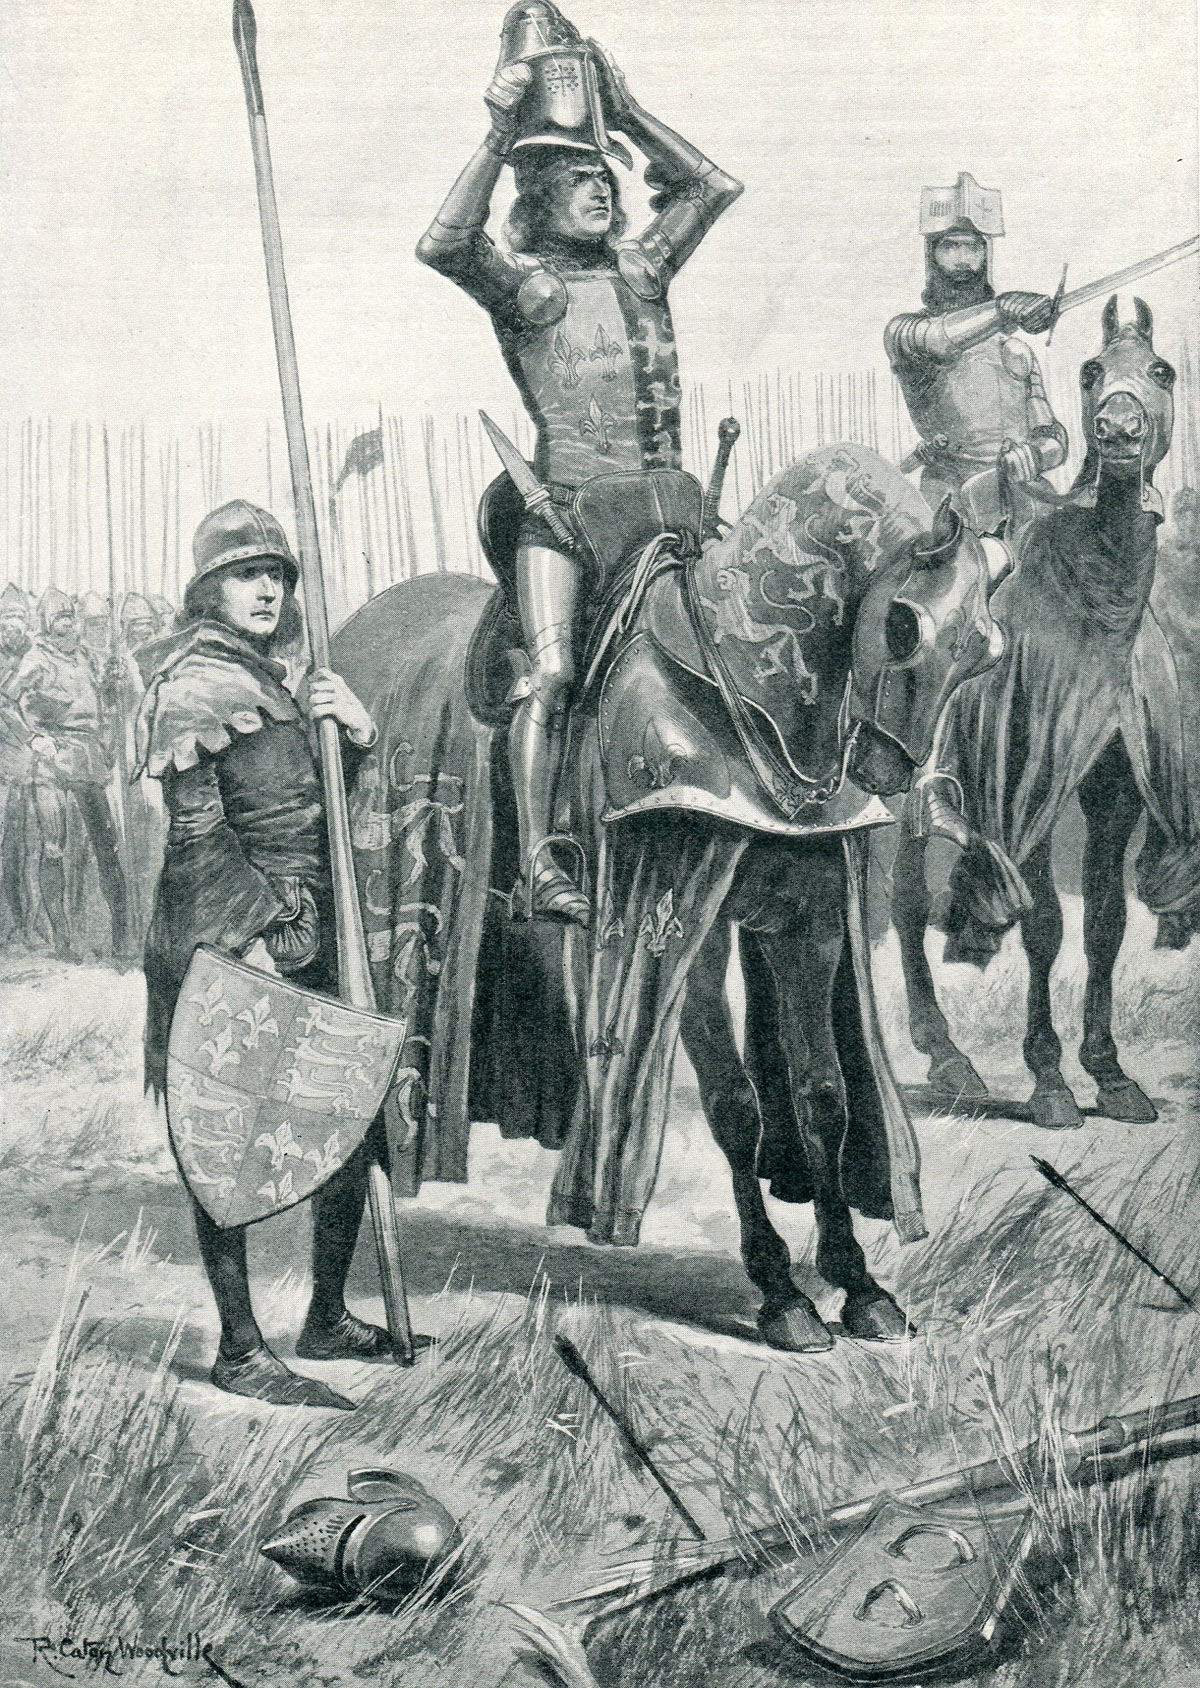 Sir John Chandos urges the Black Prince to attack saying 'Sire the Day is yours' at the Battle of Poitiers on 19th September 1356 in the Hundred Years